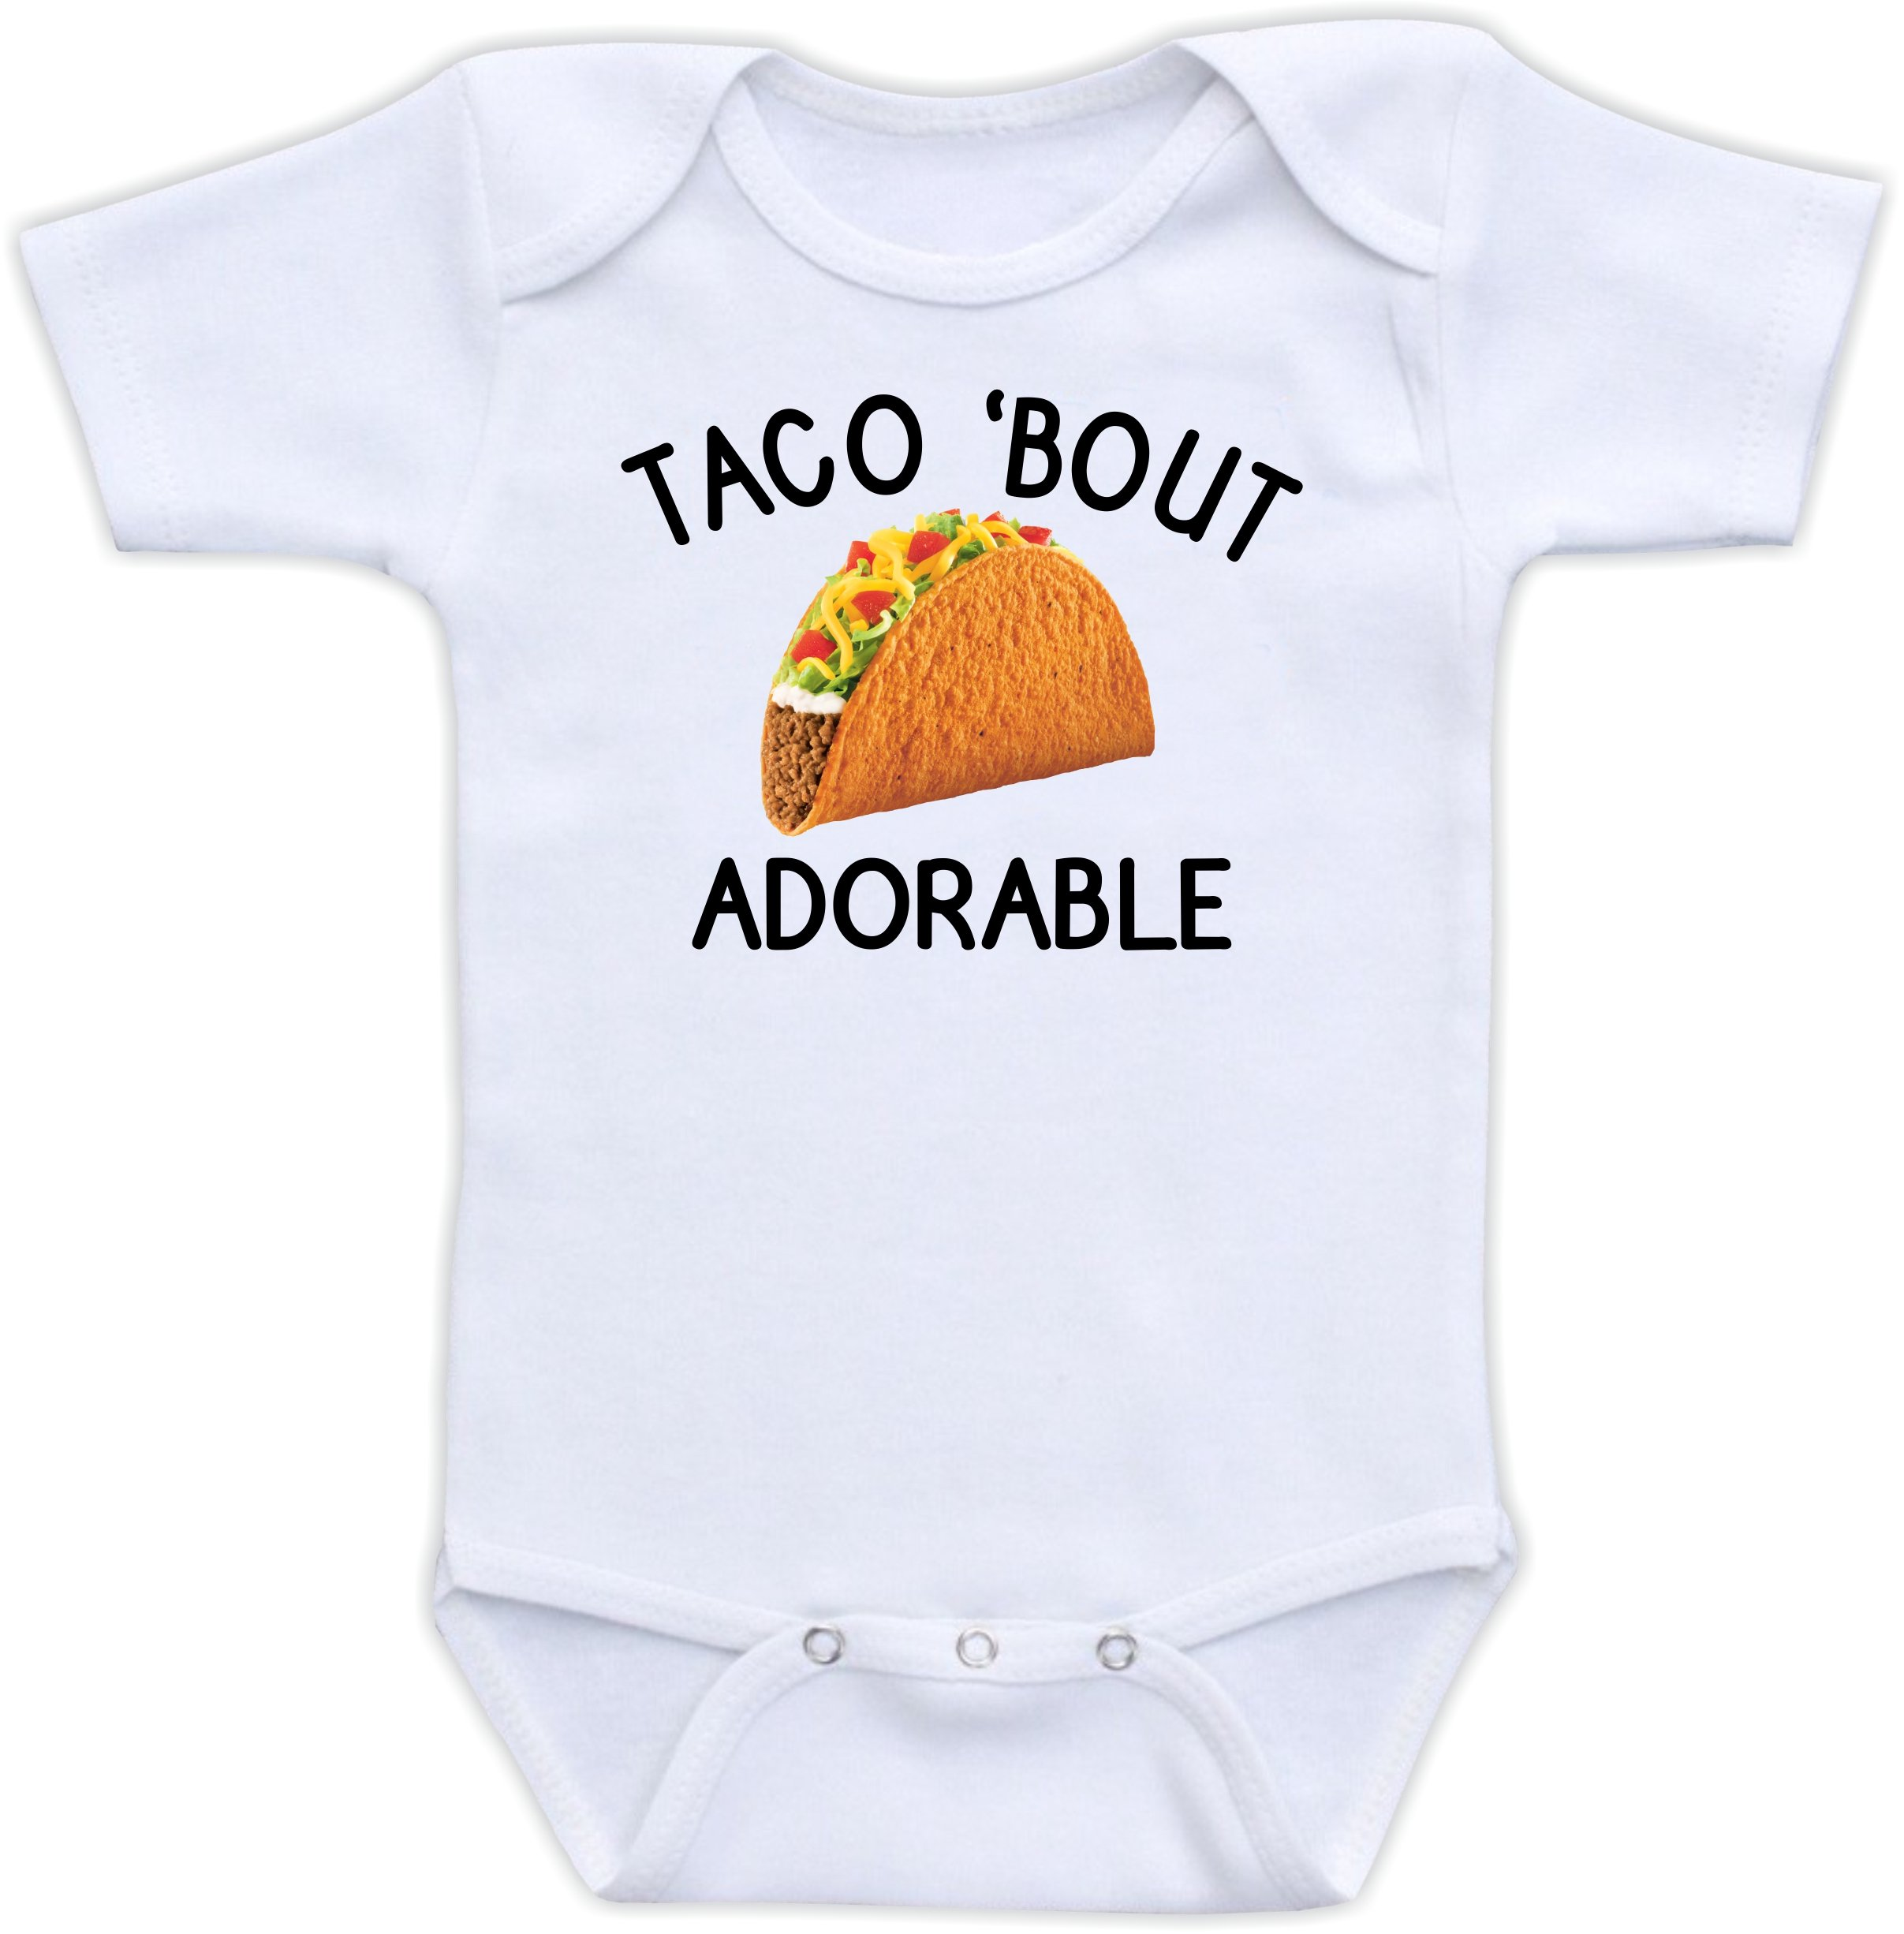 Taco 'Bout Adorable - Funny Baby Clothes, Baby Boy or Girl Bodysuit, Gender Neutral Unisex Baby Gift (3M Long Sleeve Bodysuit)